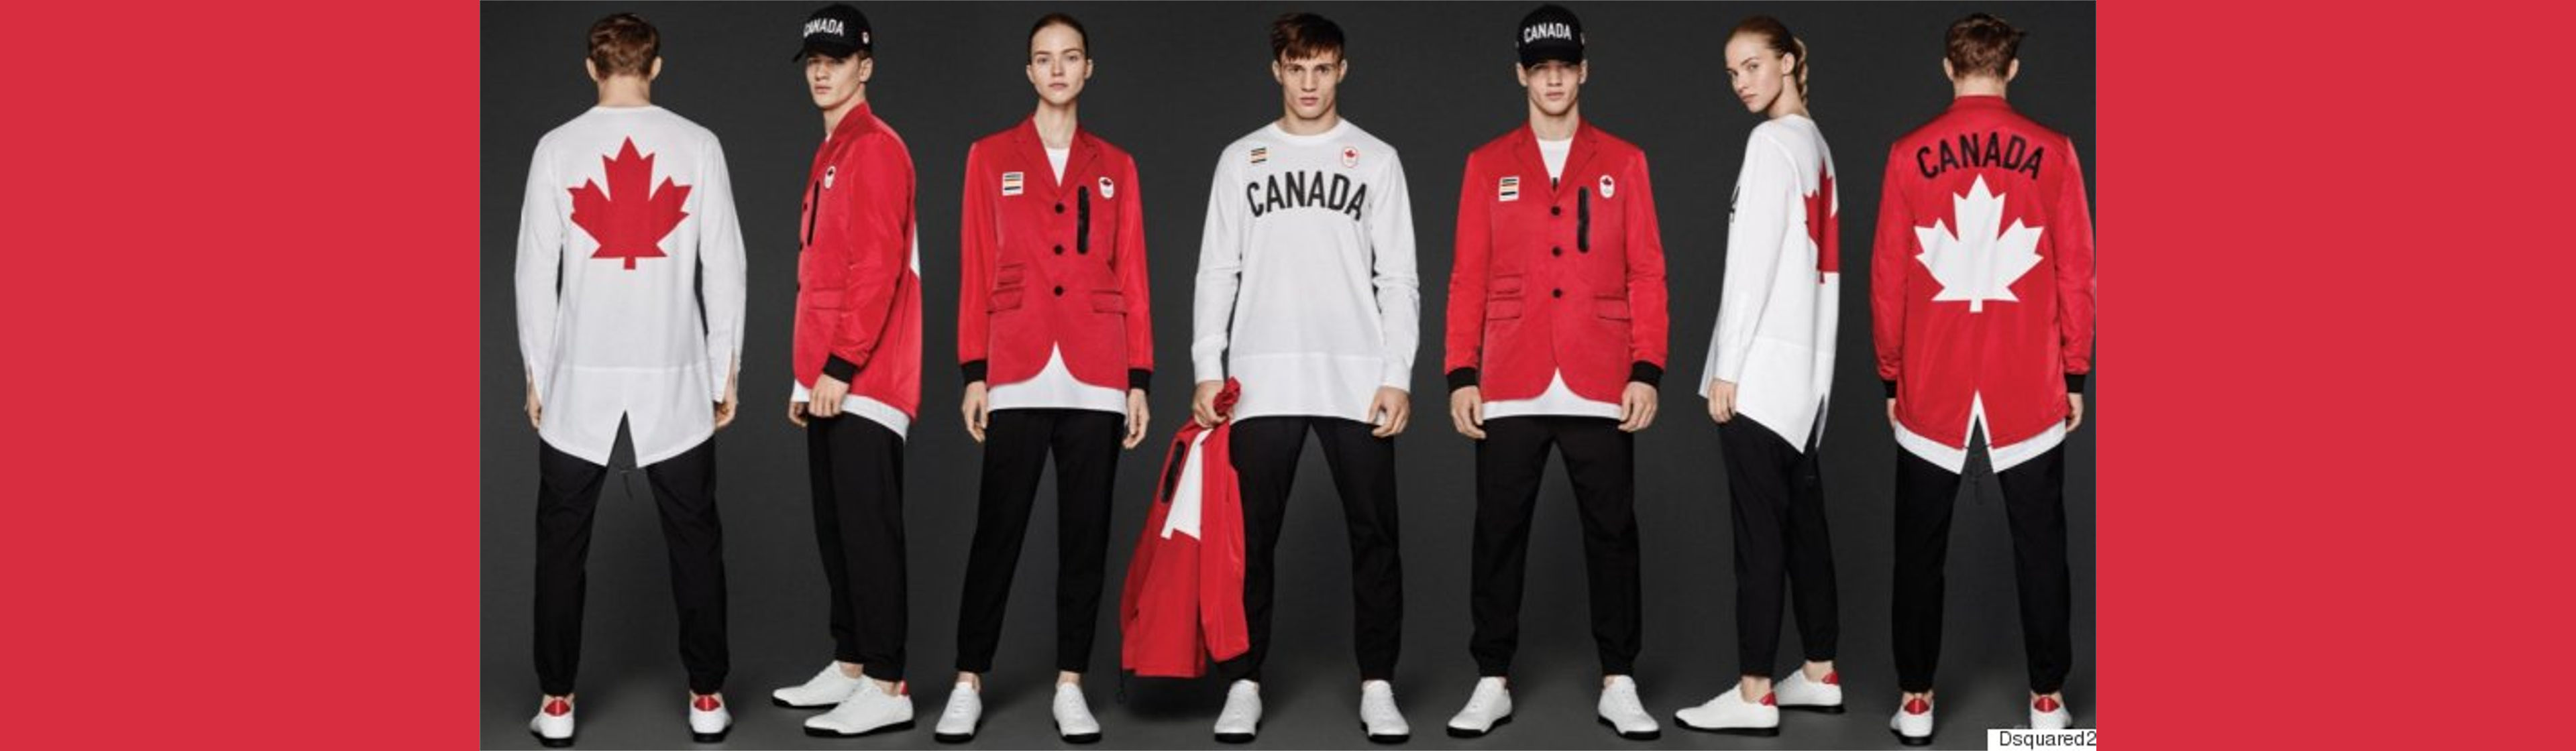 DSquared2's Gold Medal Worthy Olympic Uniform